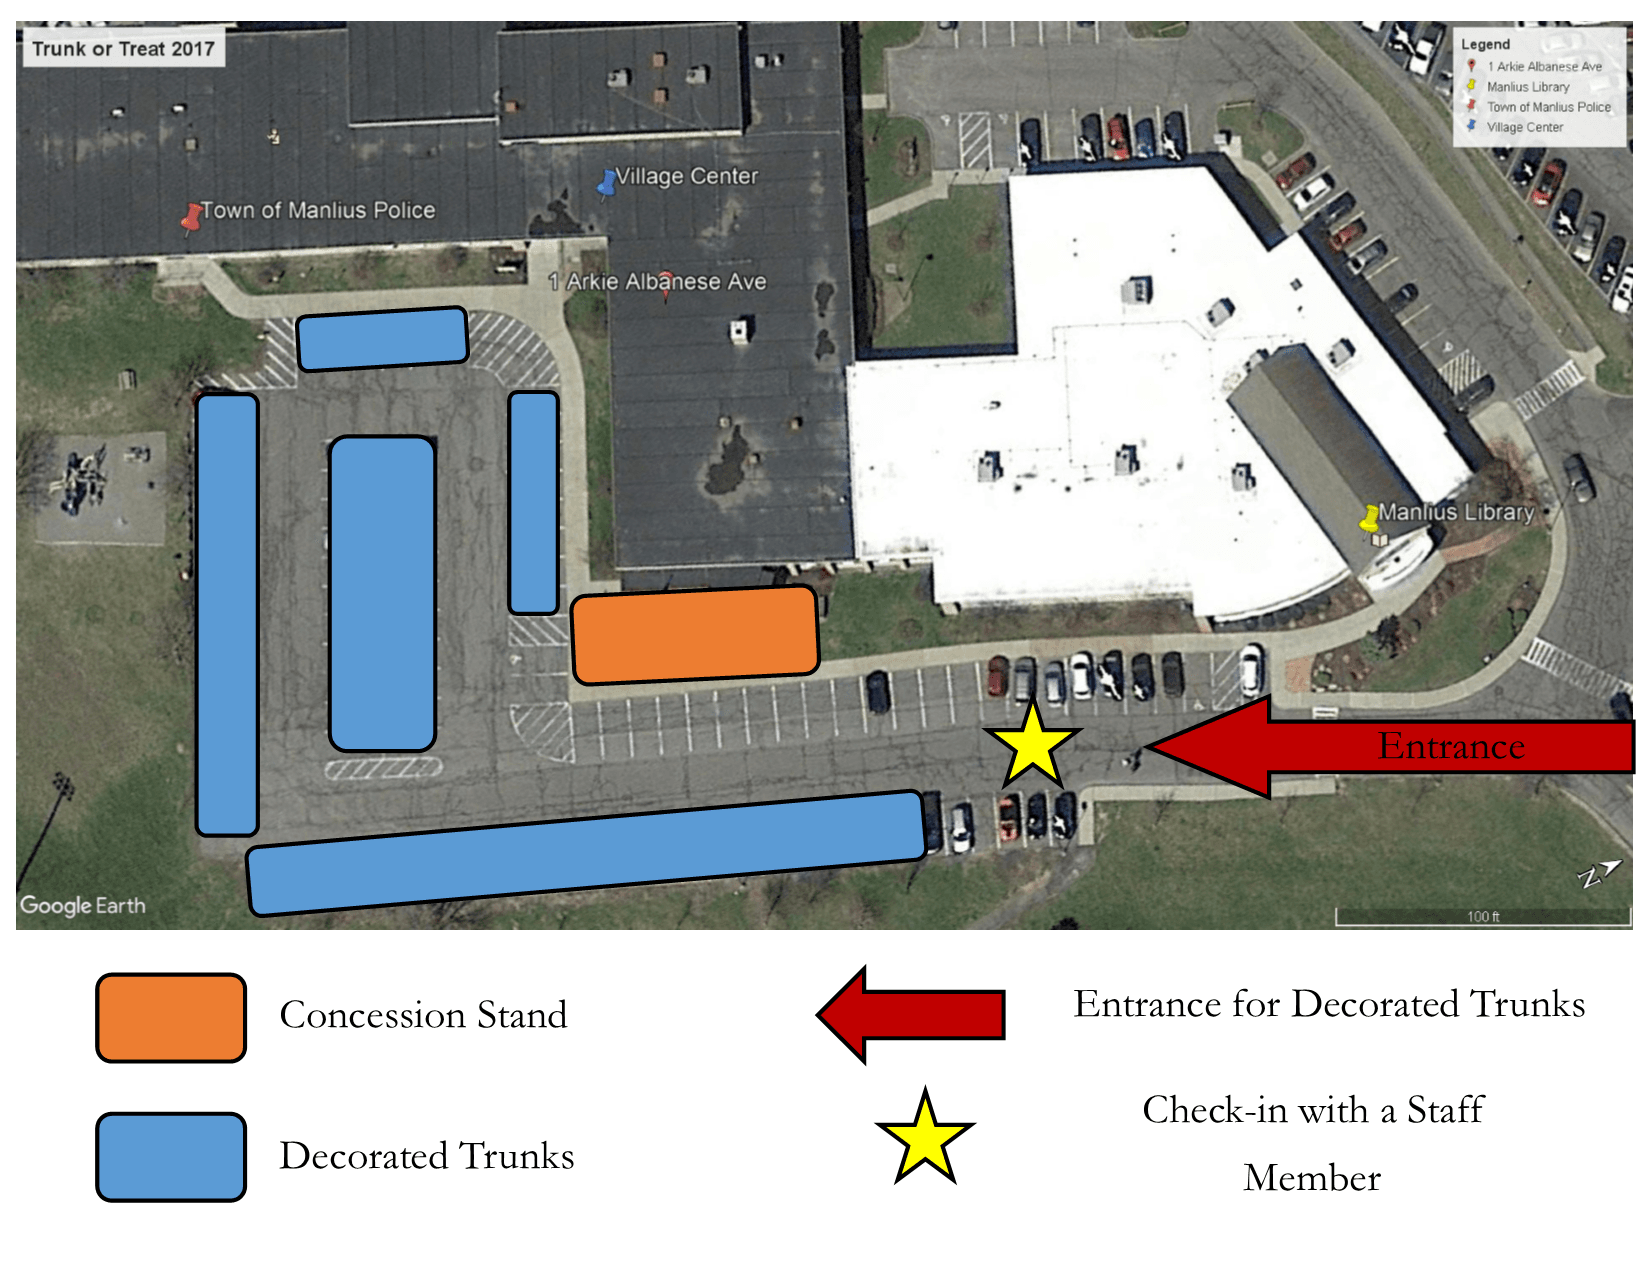 2017 Trunk or Treat Parking Lot Layout